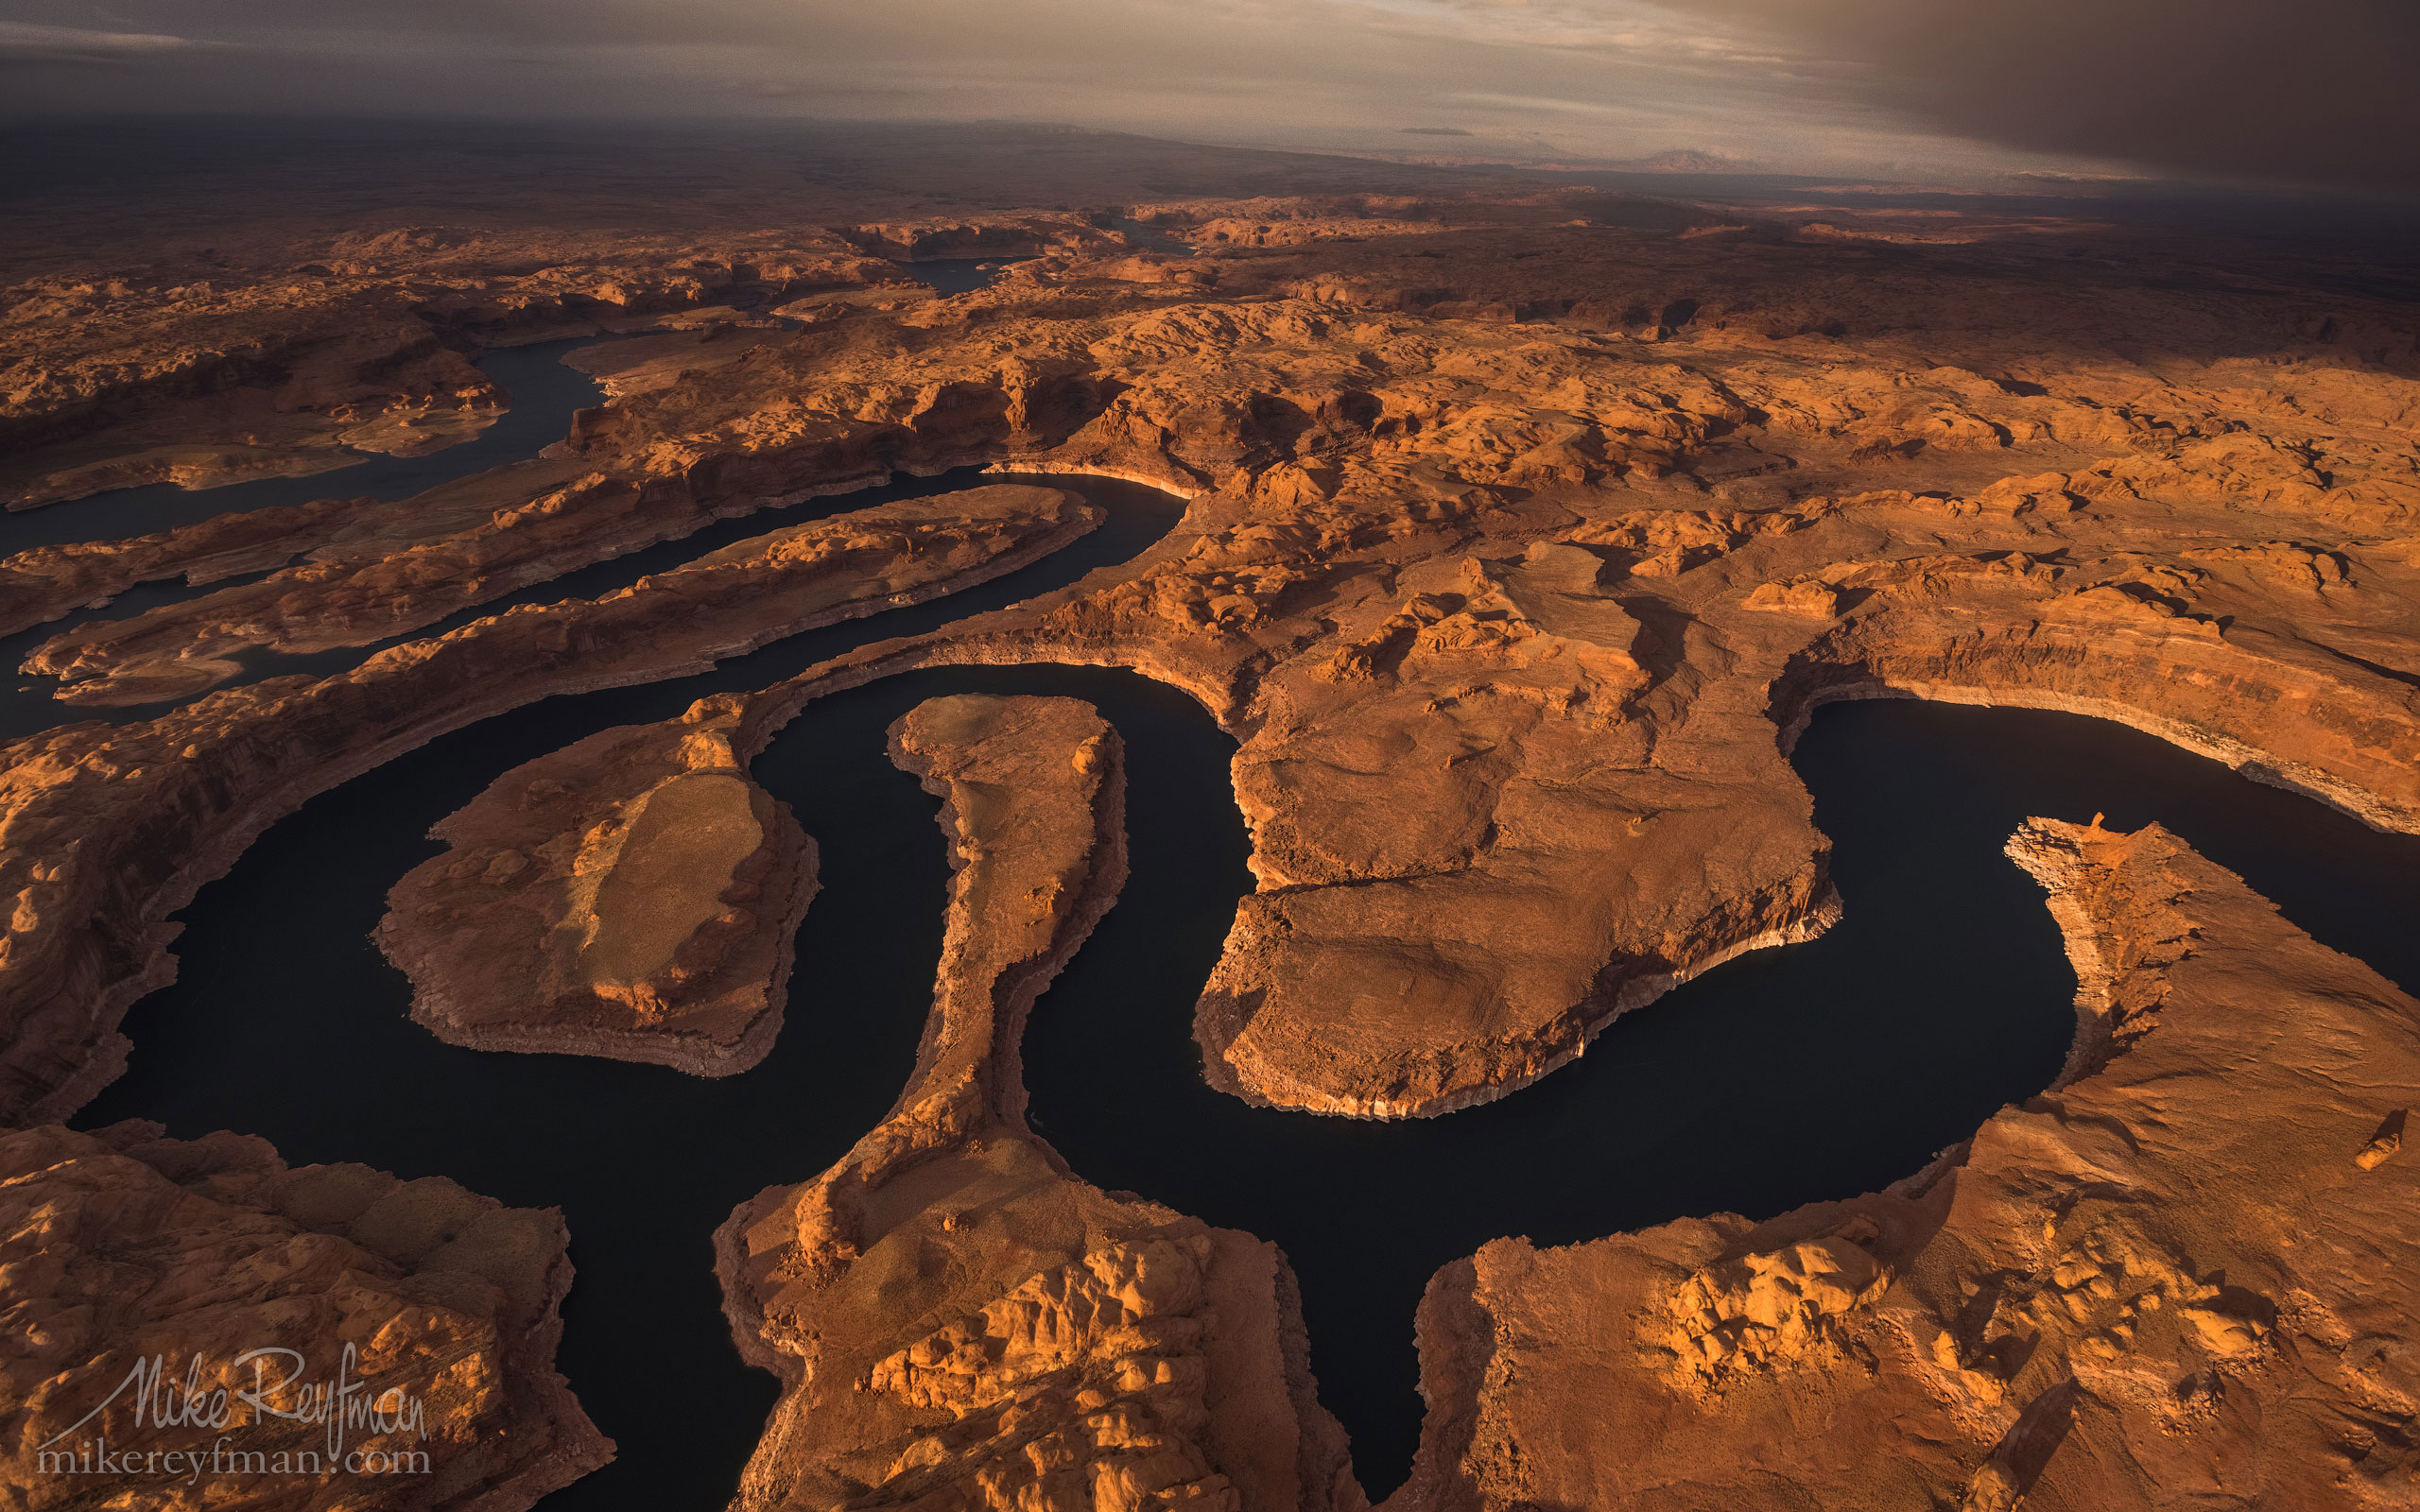 Sunset on Planet Earth. Confluence of San Juan & Colorado Rivers. Glen Canyon NRA, Lake Powell, Utah/Arizona, USA. Aerial. 001-LP3_D1C1590.jpg - Lake Powell, Glen Canyon NAR. Colorado and Sun Juan Rivers. Utah/Arizona, USA  - Mike Reyfman Photography